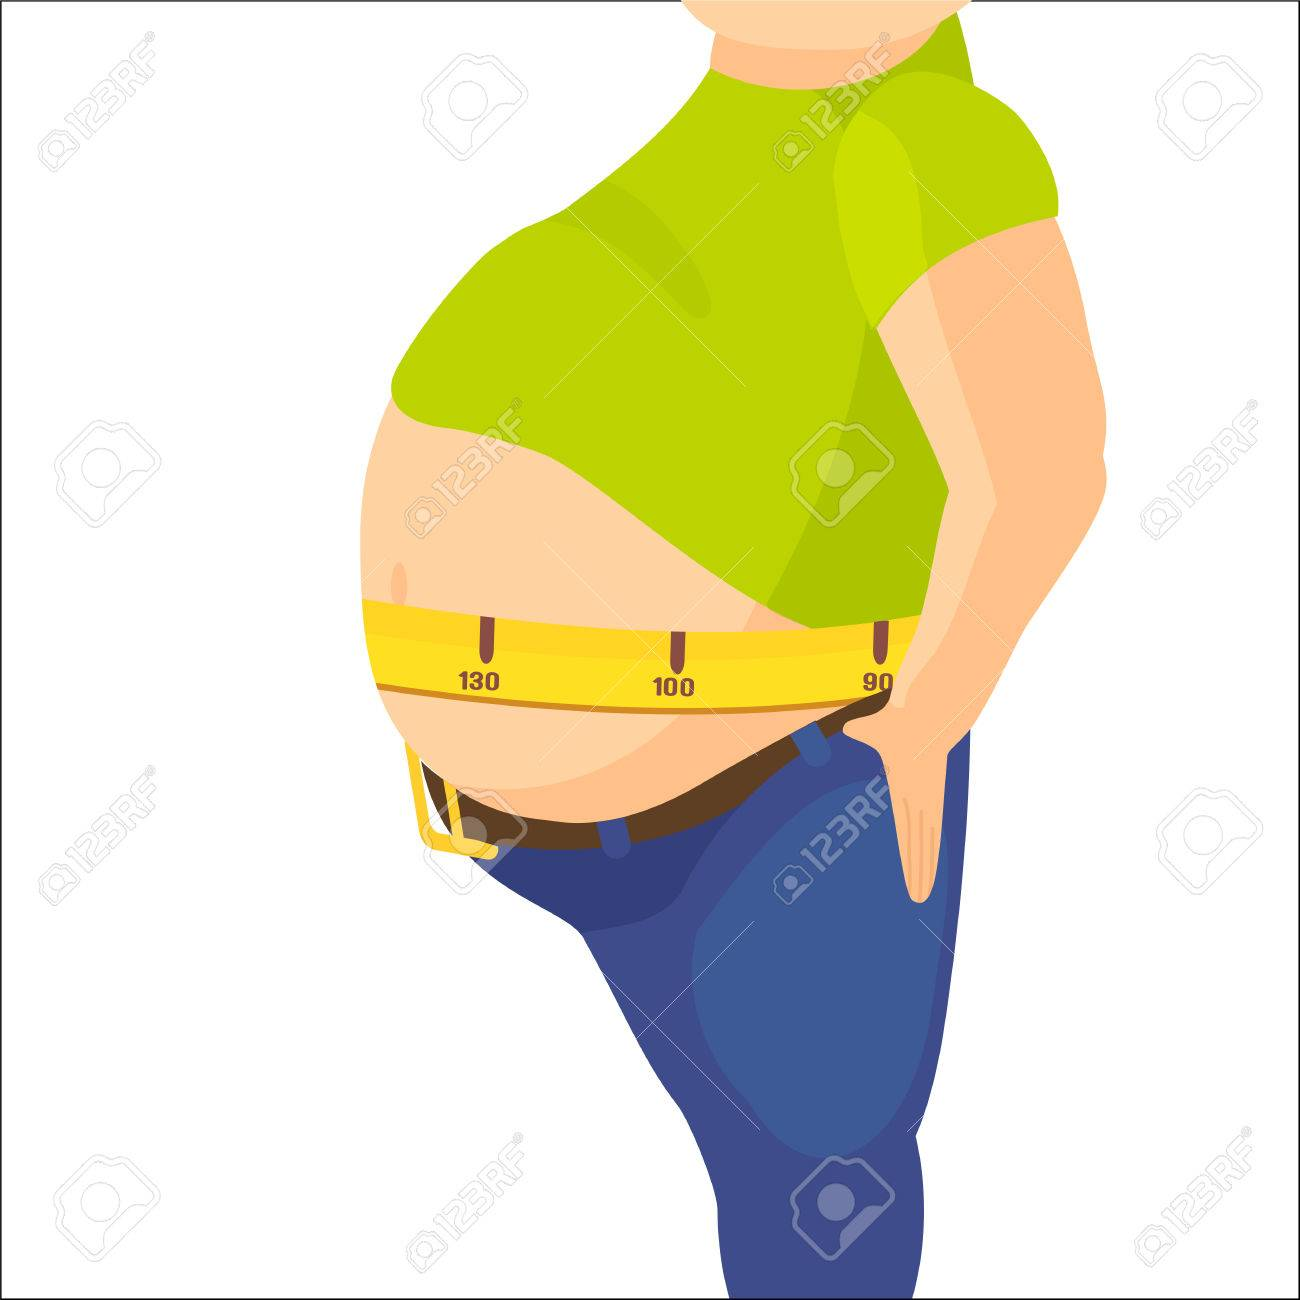 Abdomen fat, overweight man with a big belly and measure tape around waist against. - 60160455